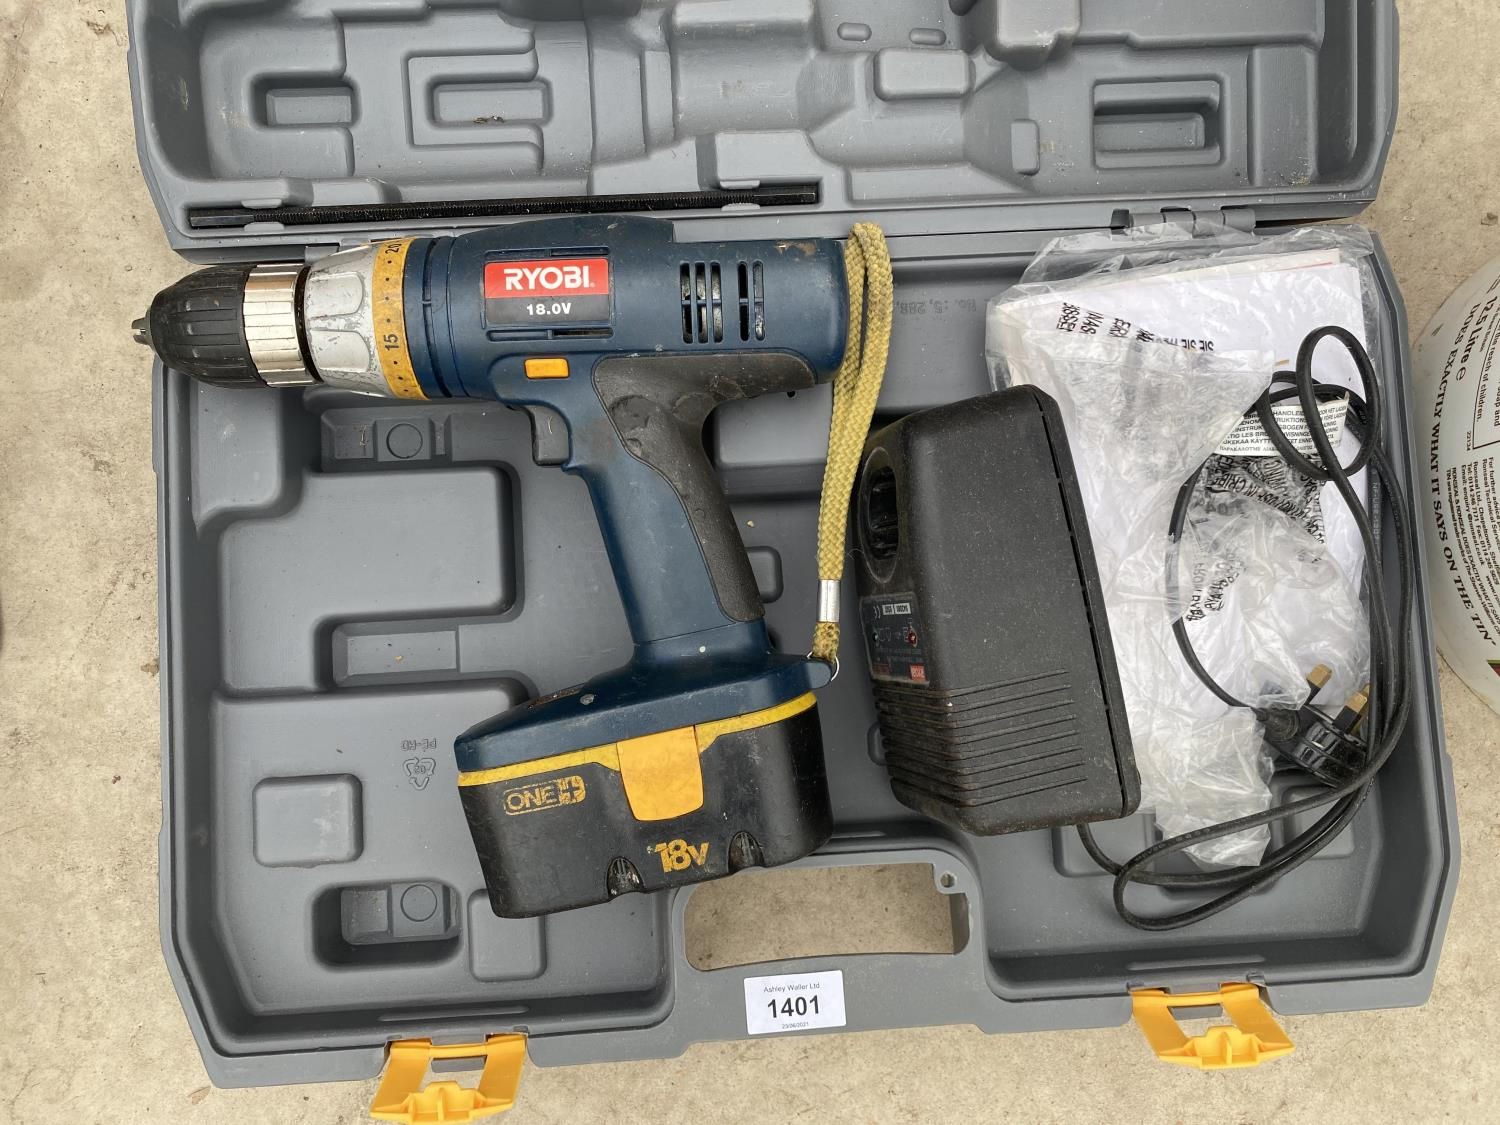 A RYOBI 18V BATTERY DRILL WITH CHARGER